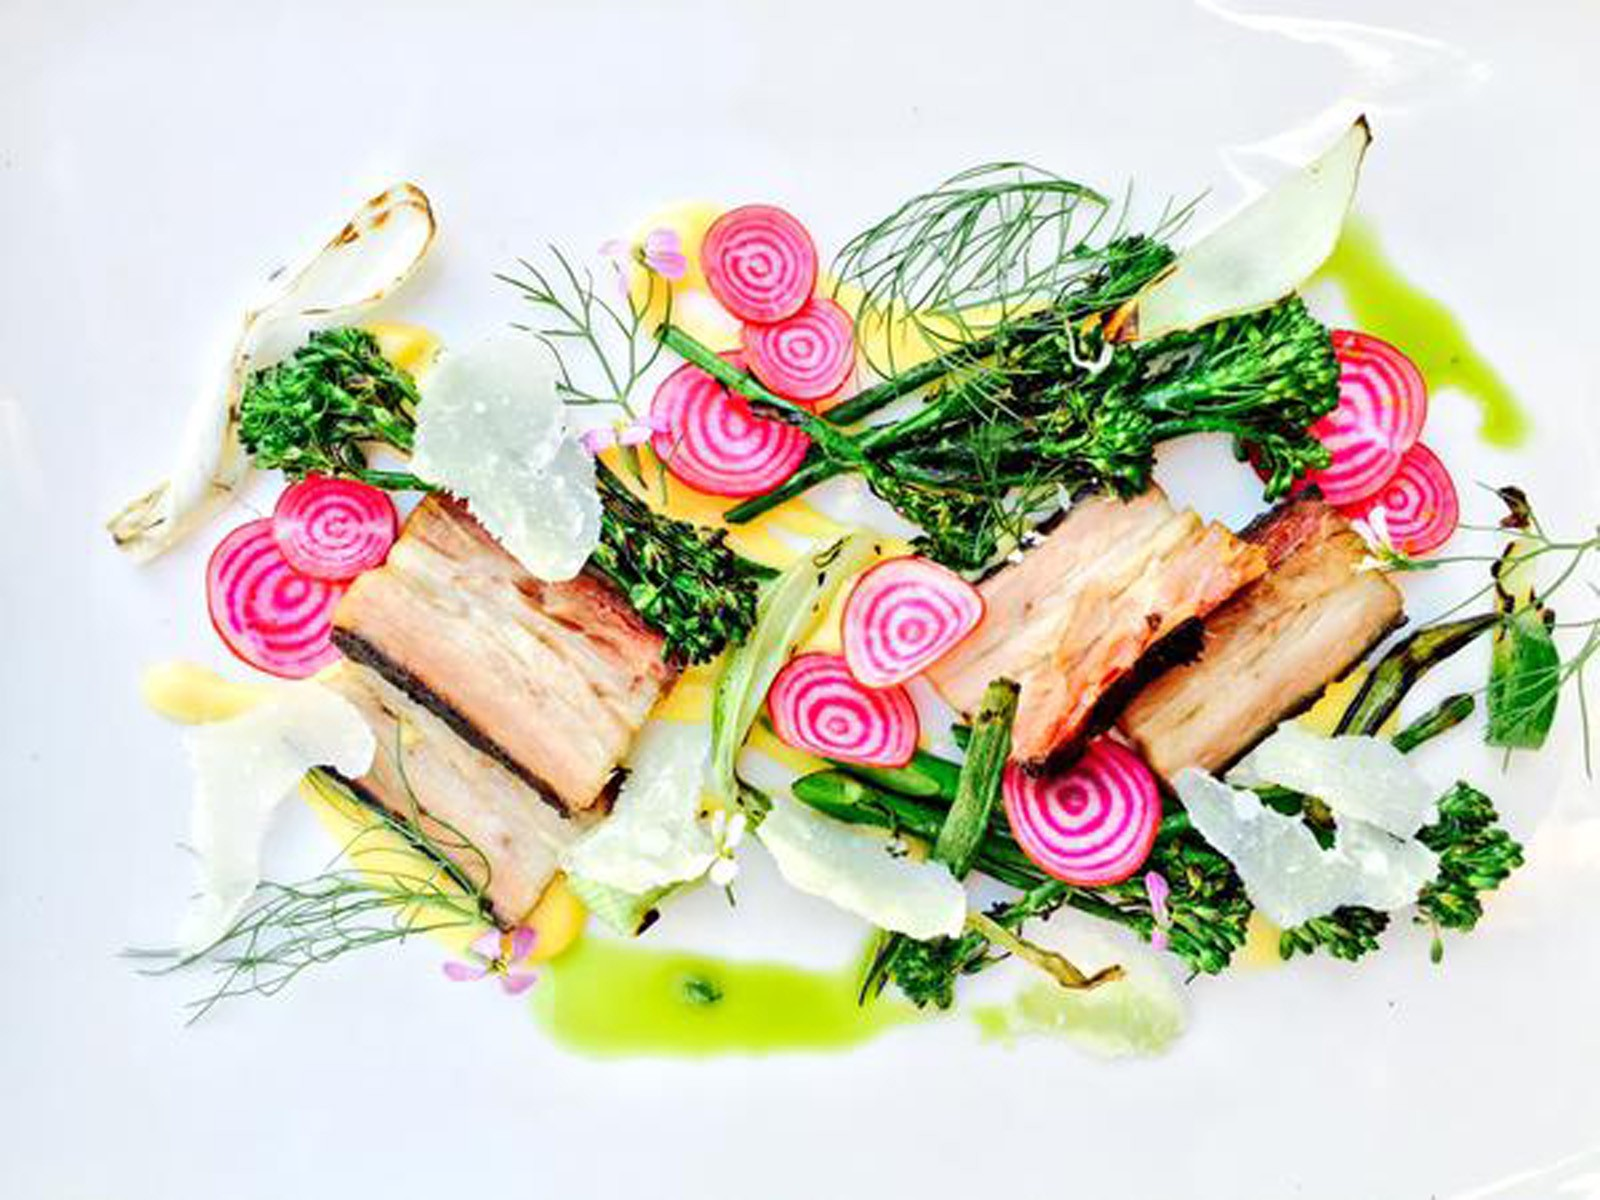 Daily Special Pork Belly with shaved beets and brocolini